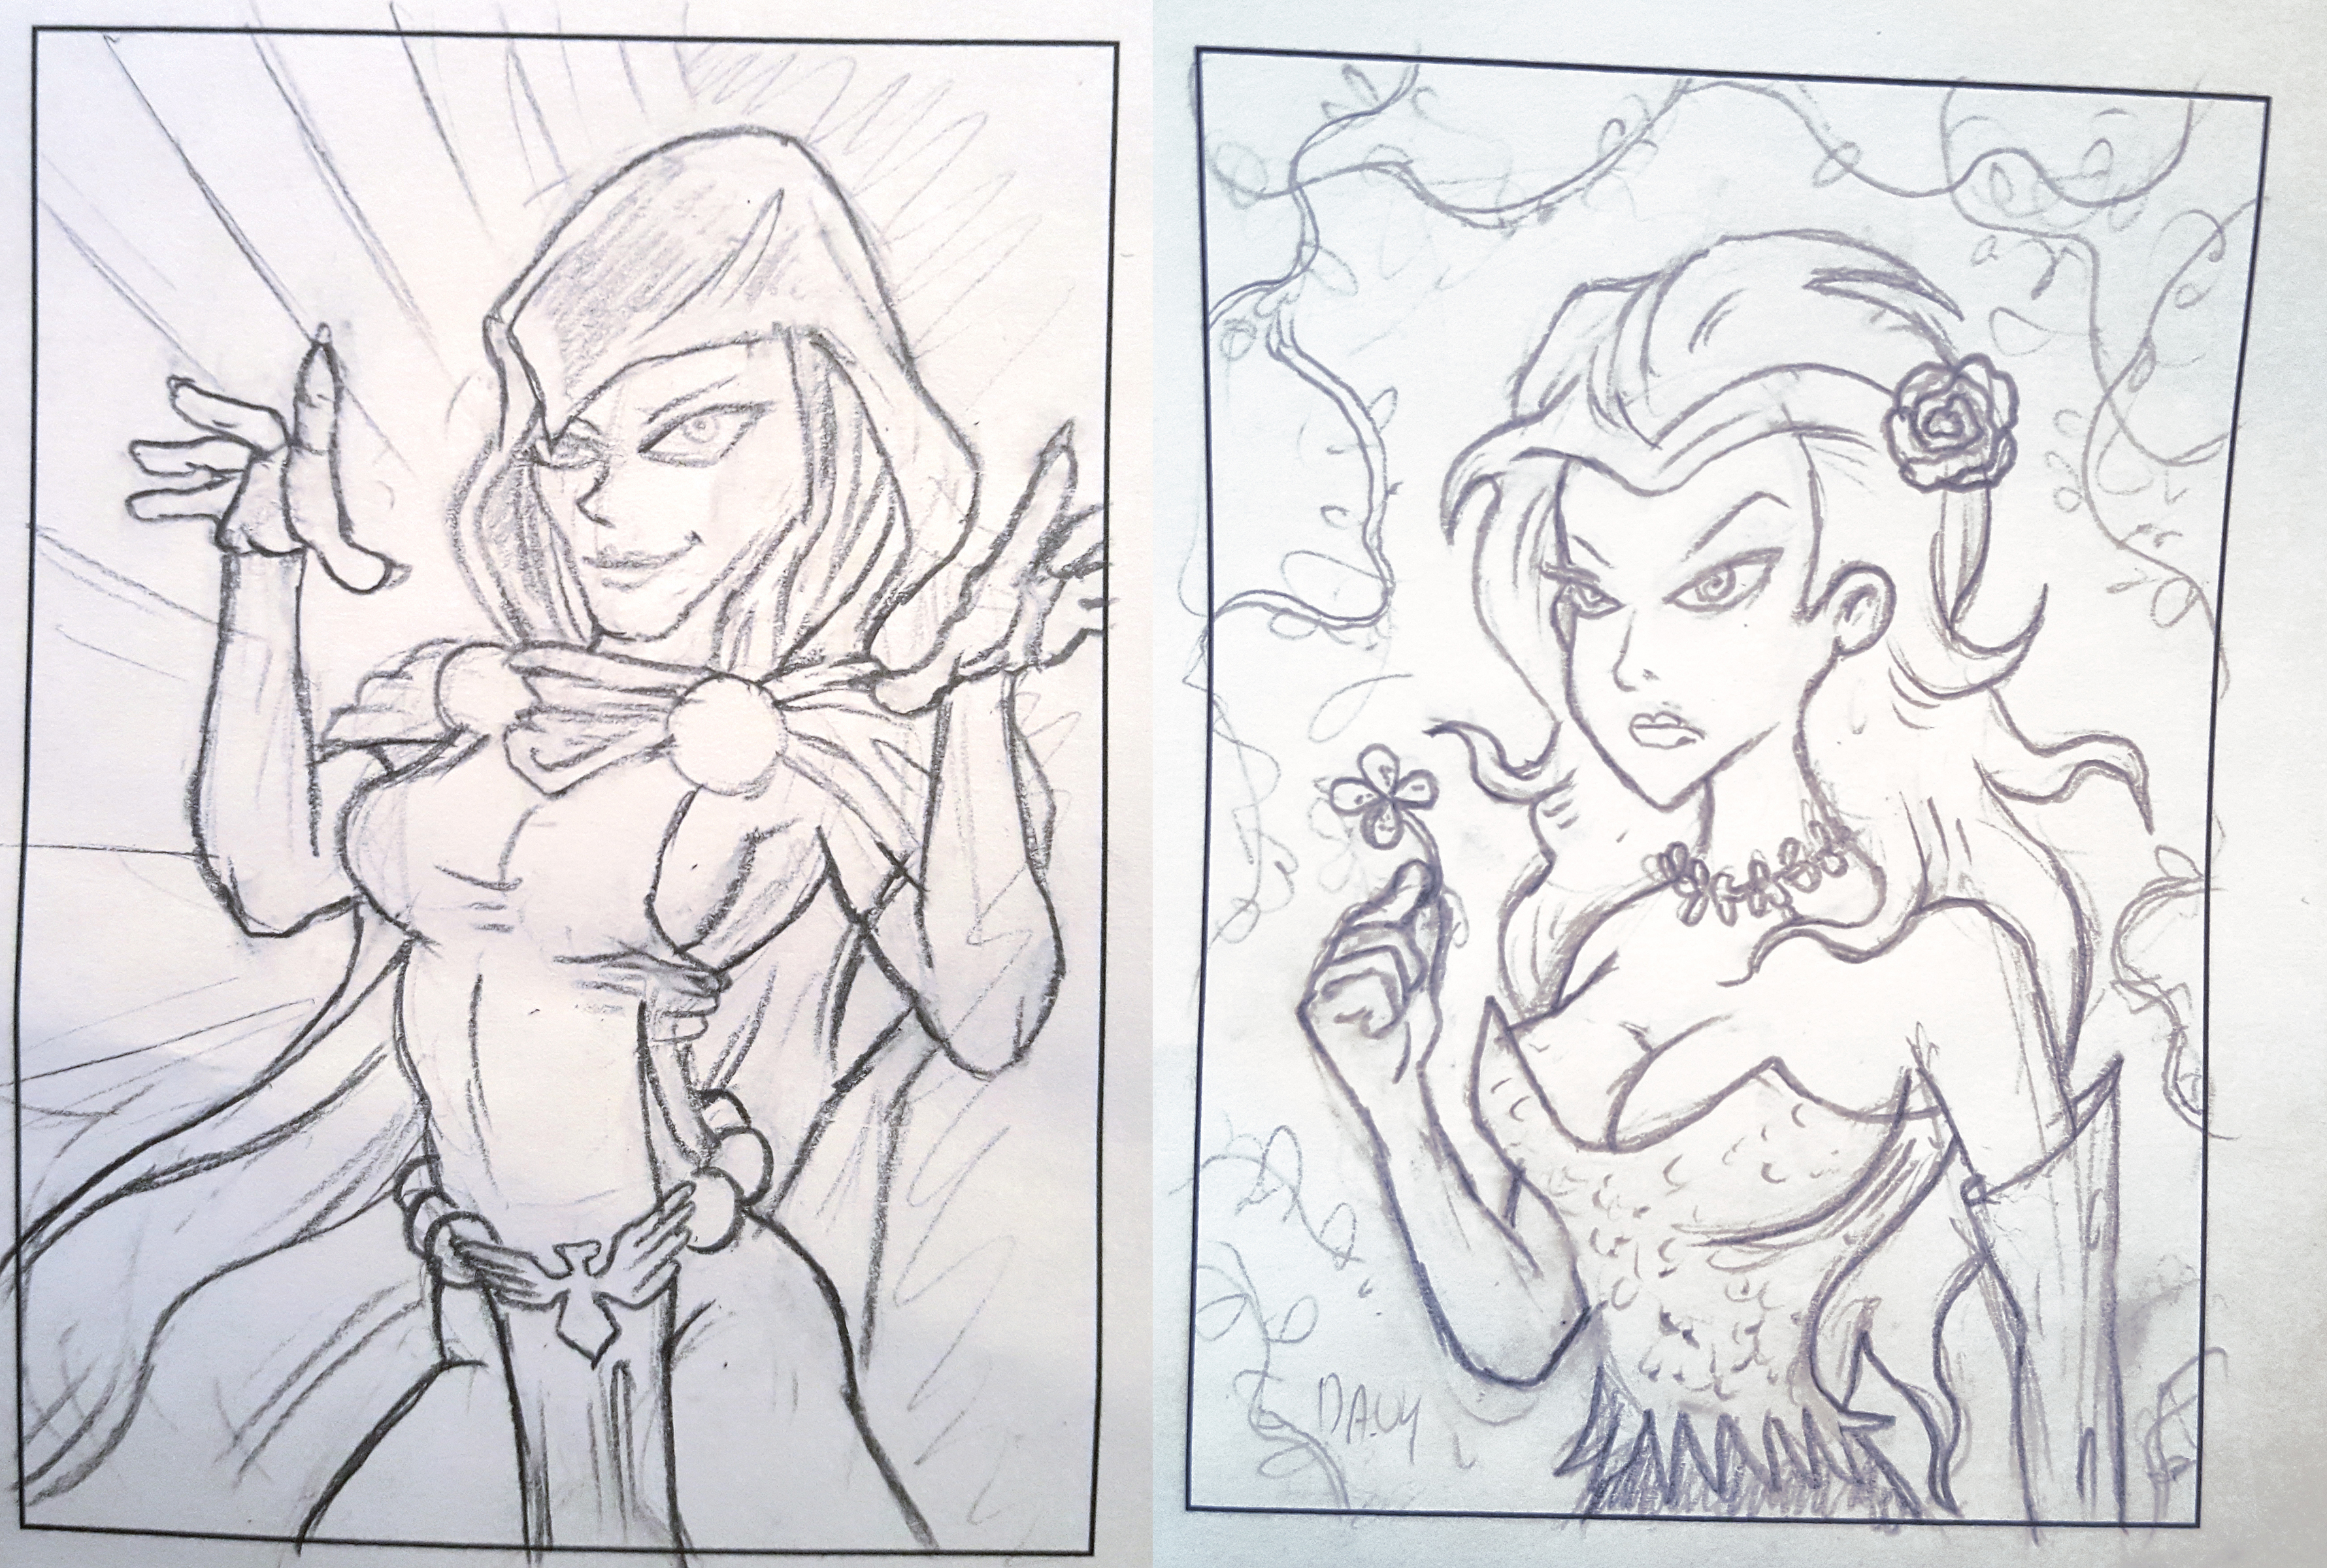 Davy's version of Raven and Poison Ivy.